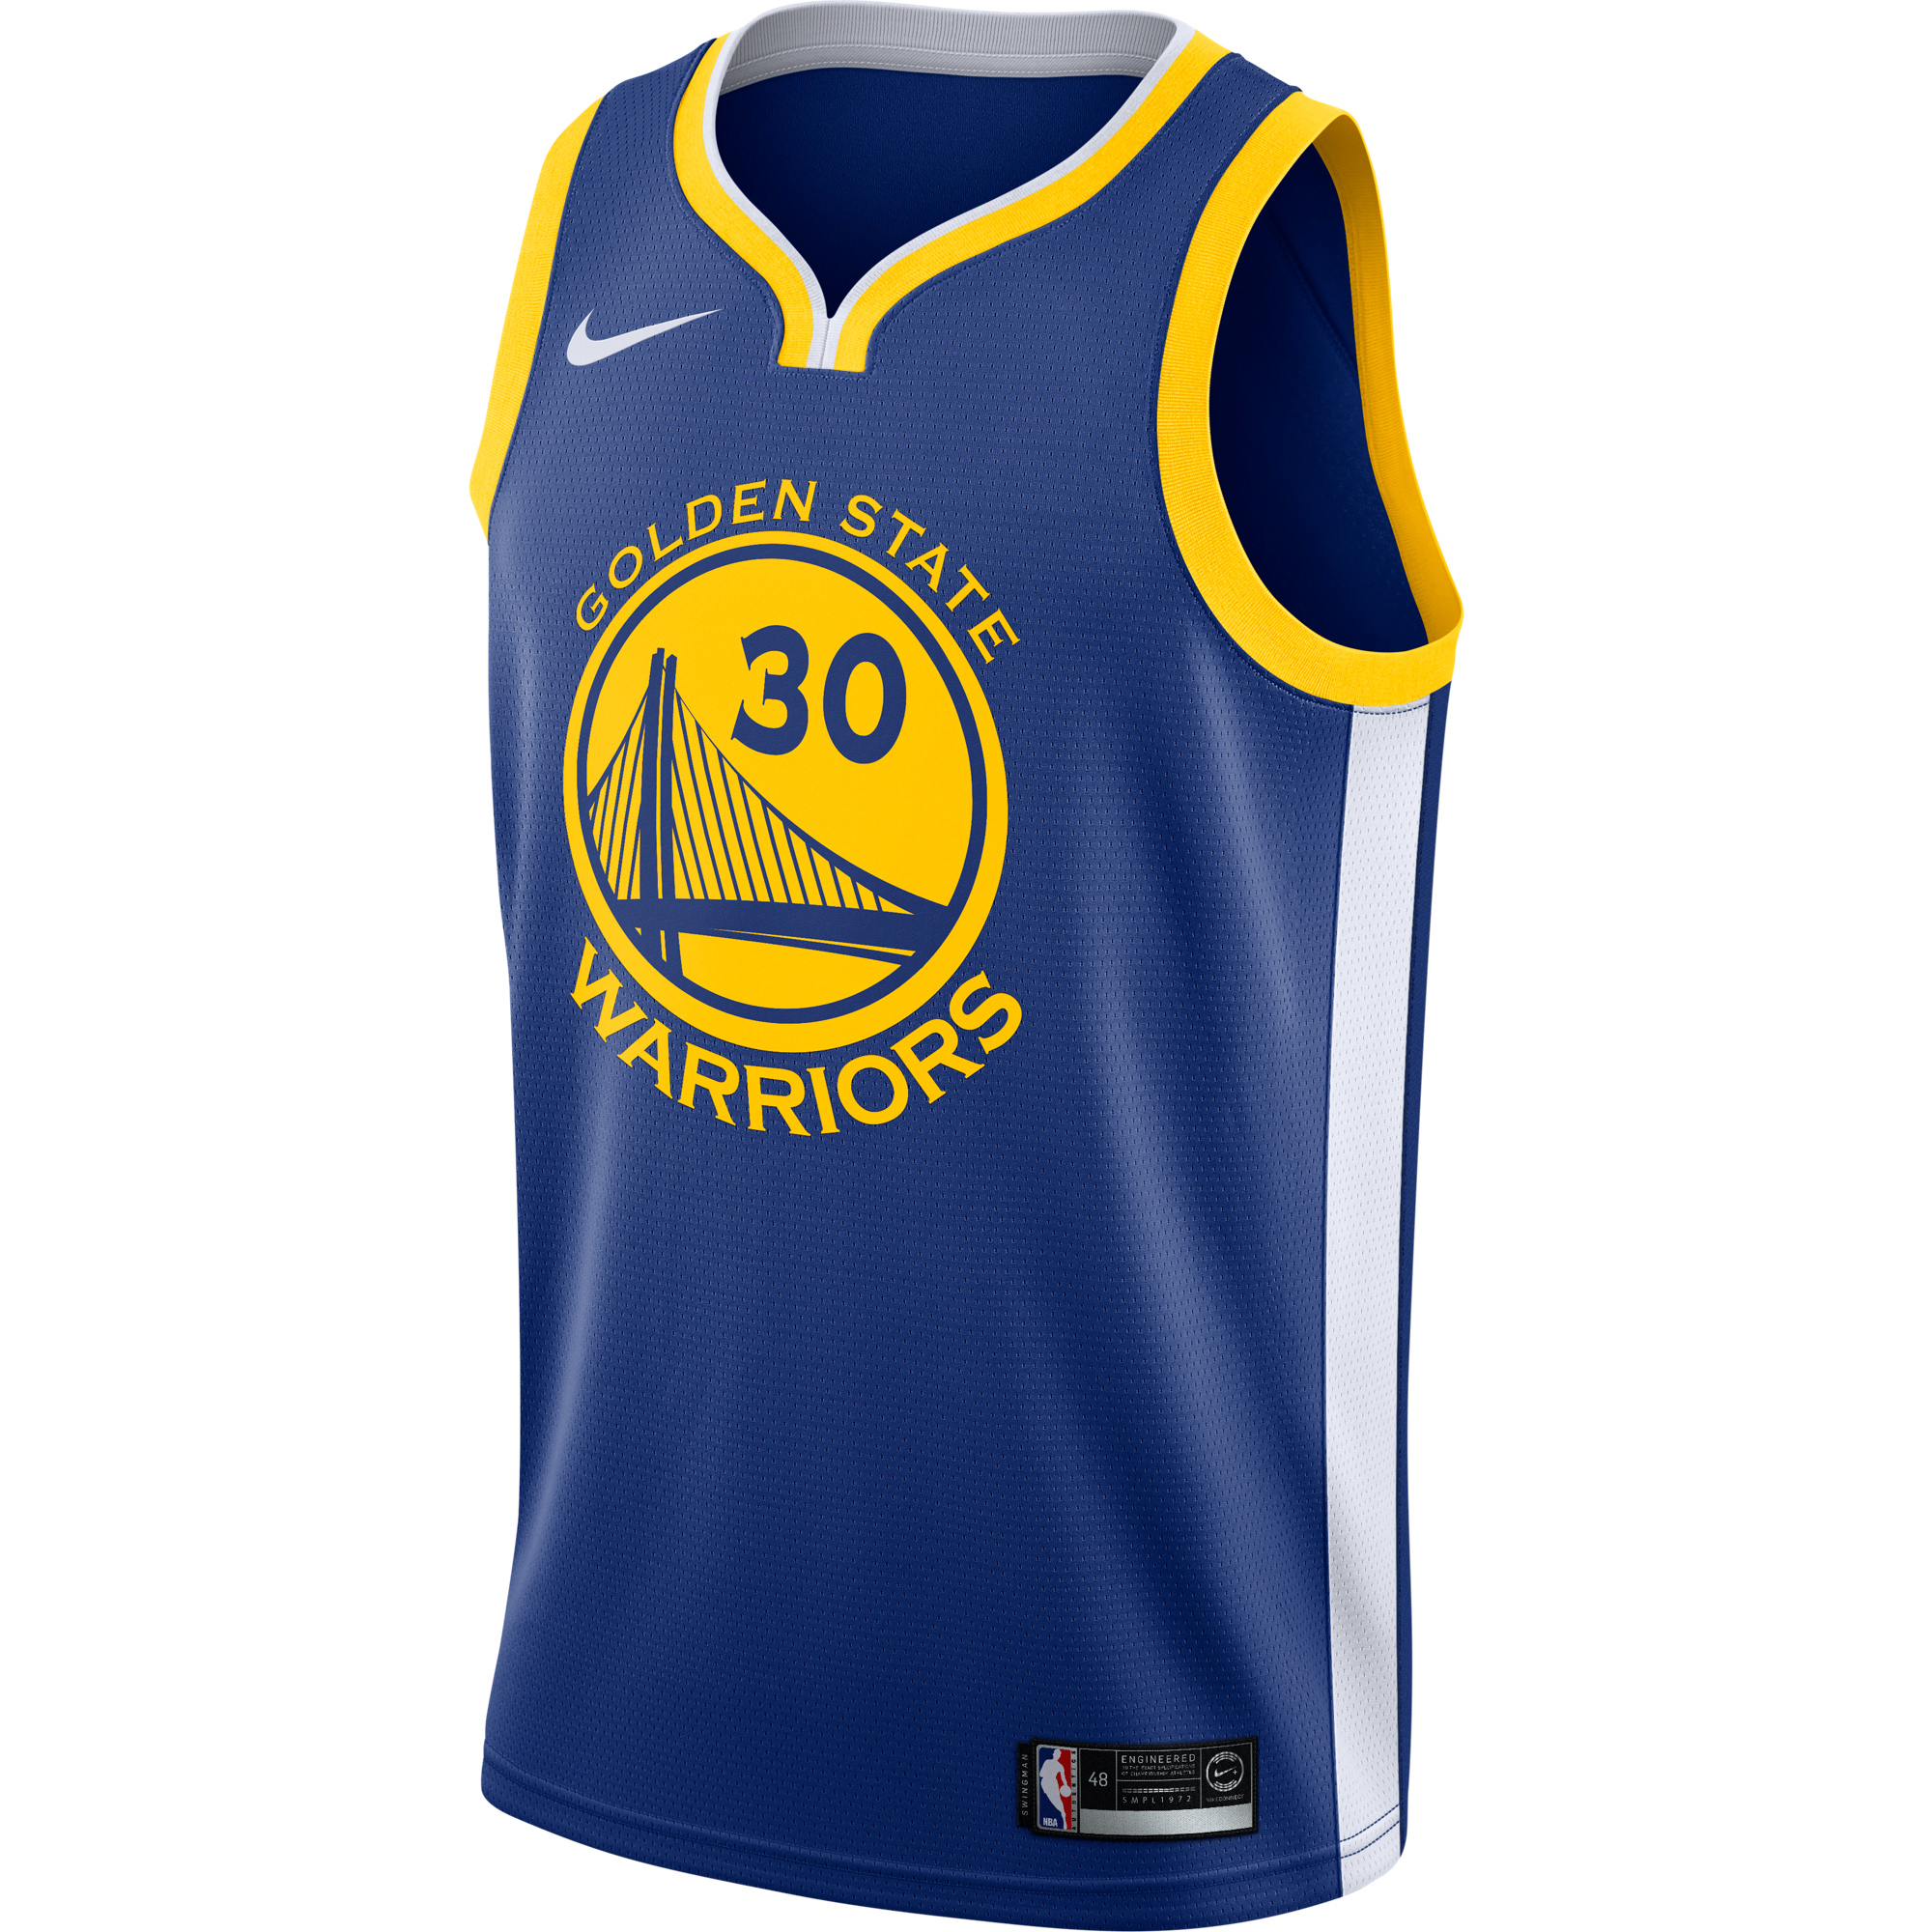 5db976786 Golden State Warriors Team Shop - Walmart.com